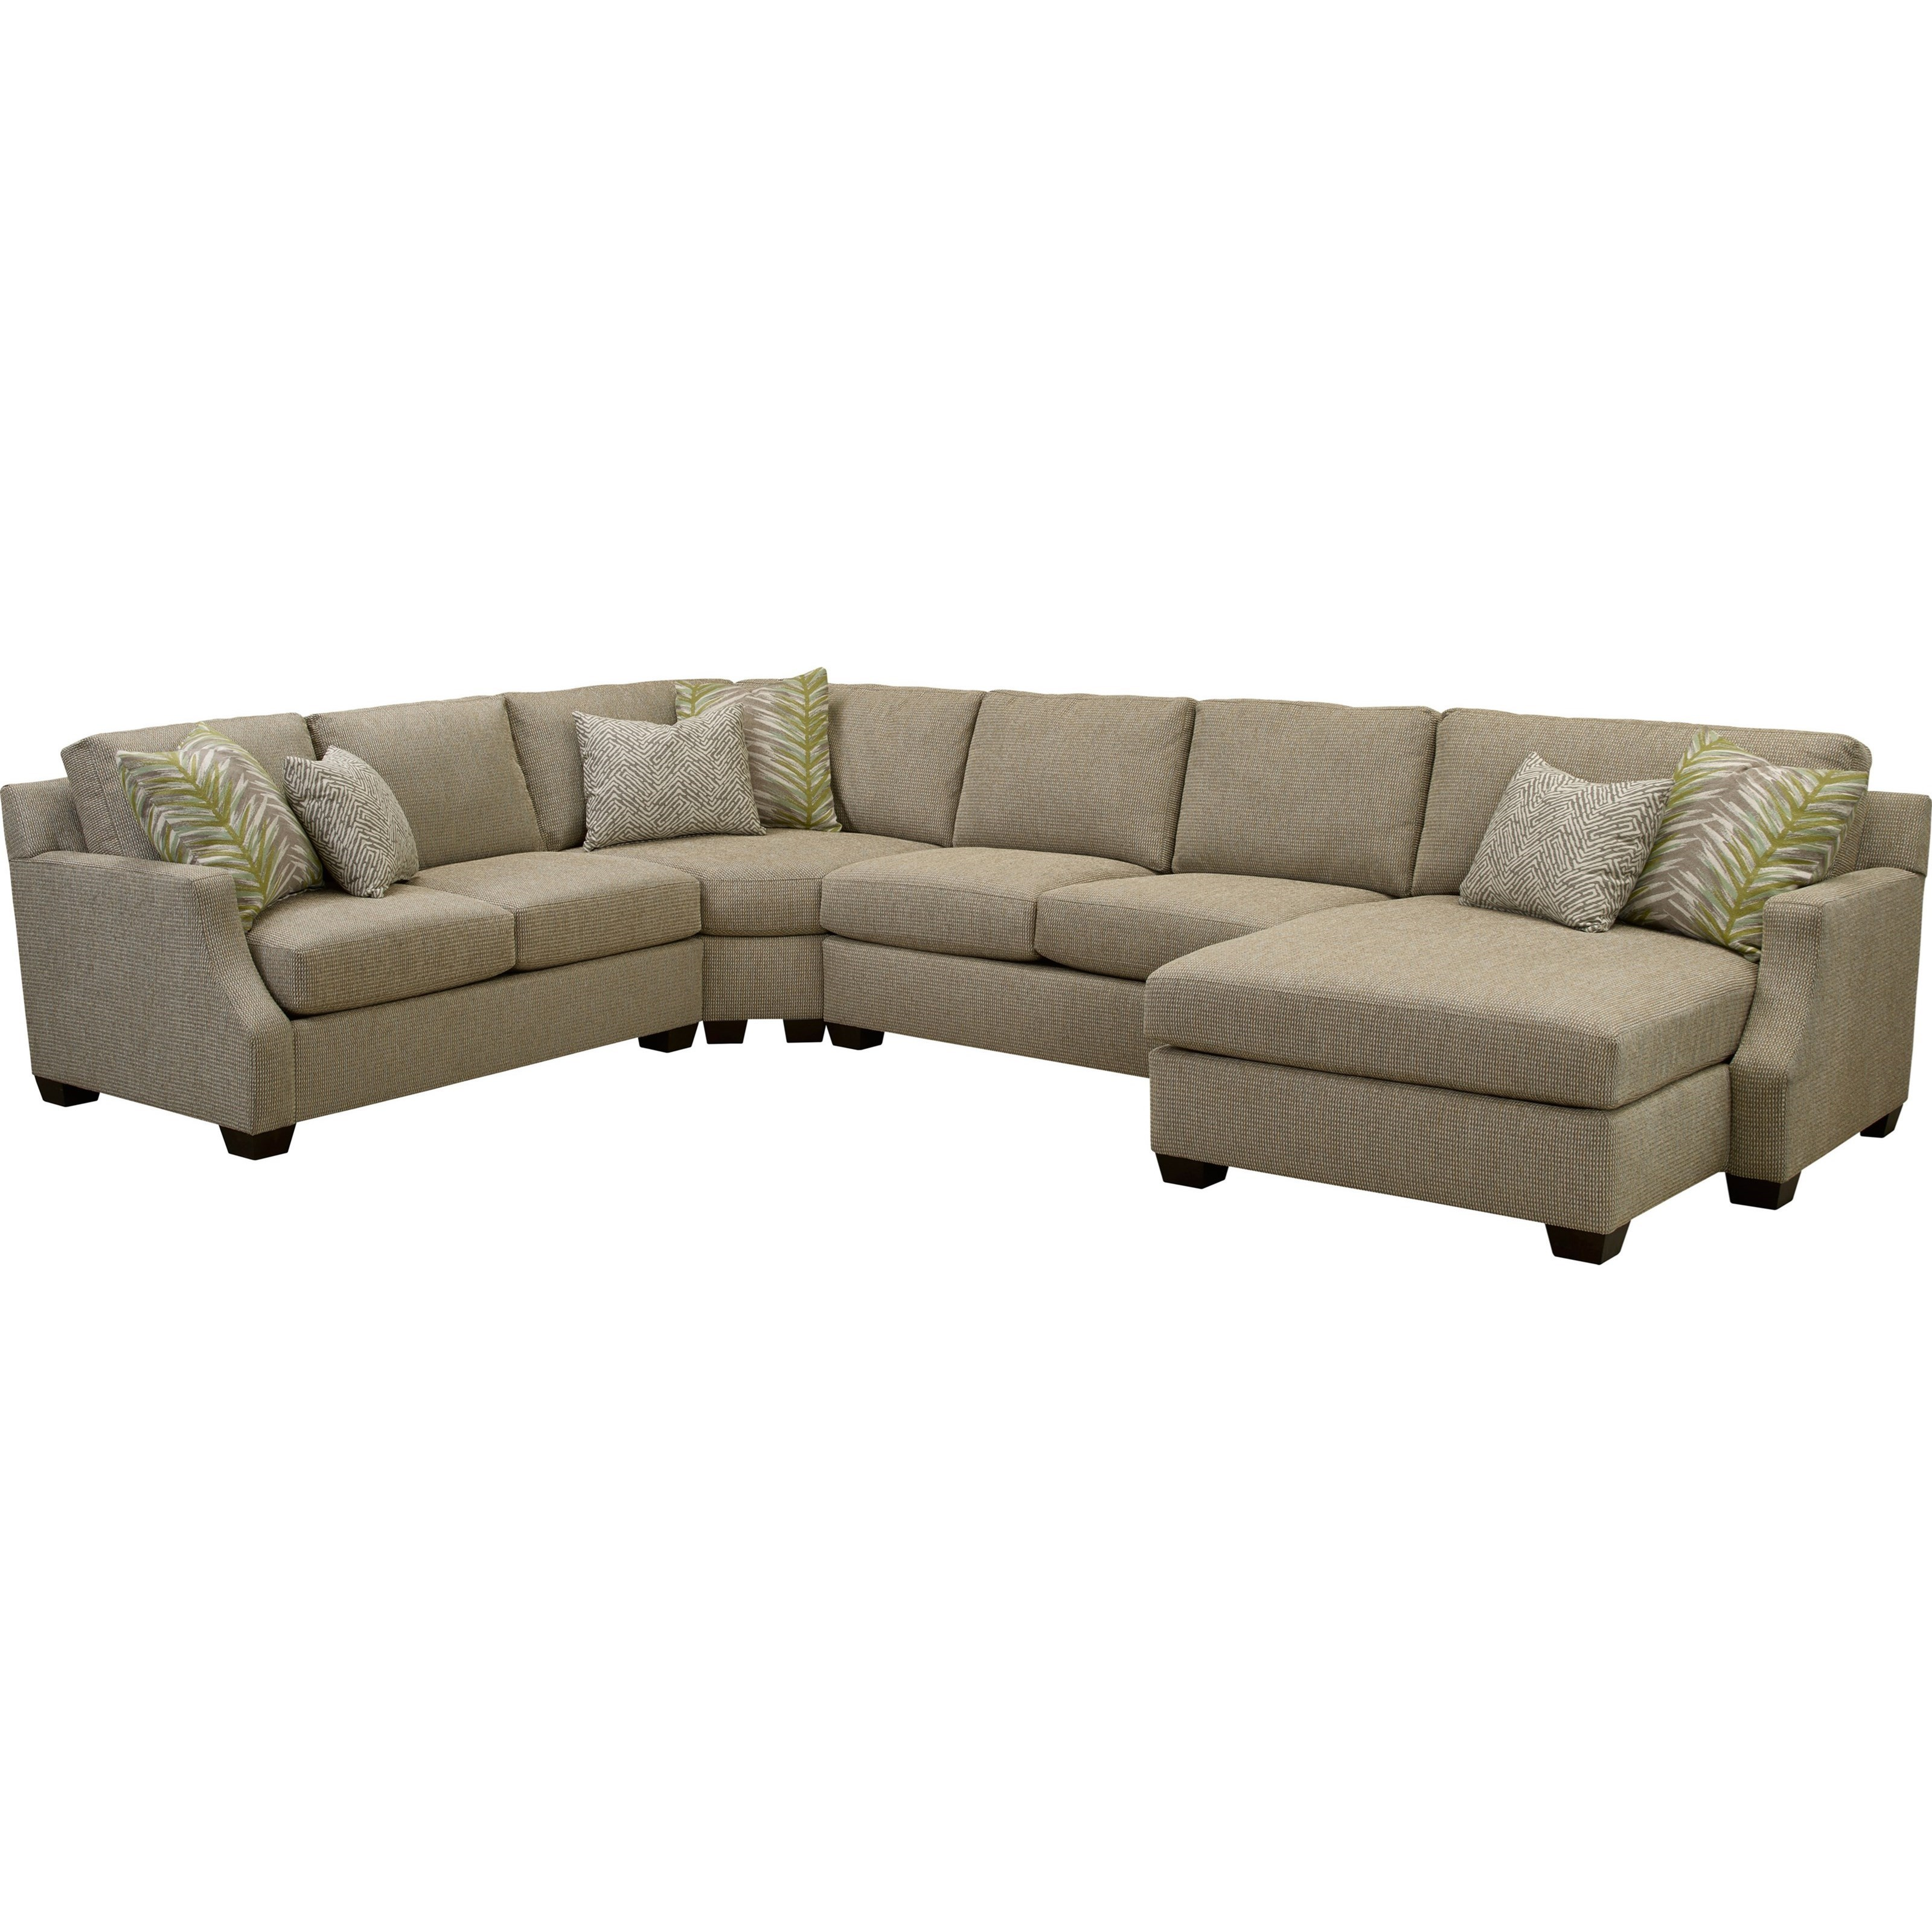 Broyhill Furniture Chambers Large 4 Pc. Sectional Sofa With RAF Chaise